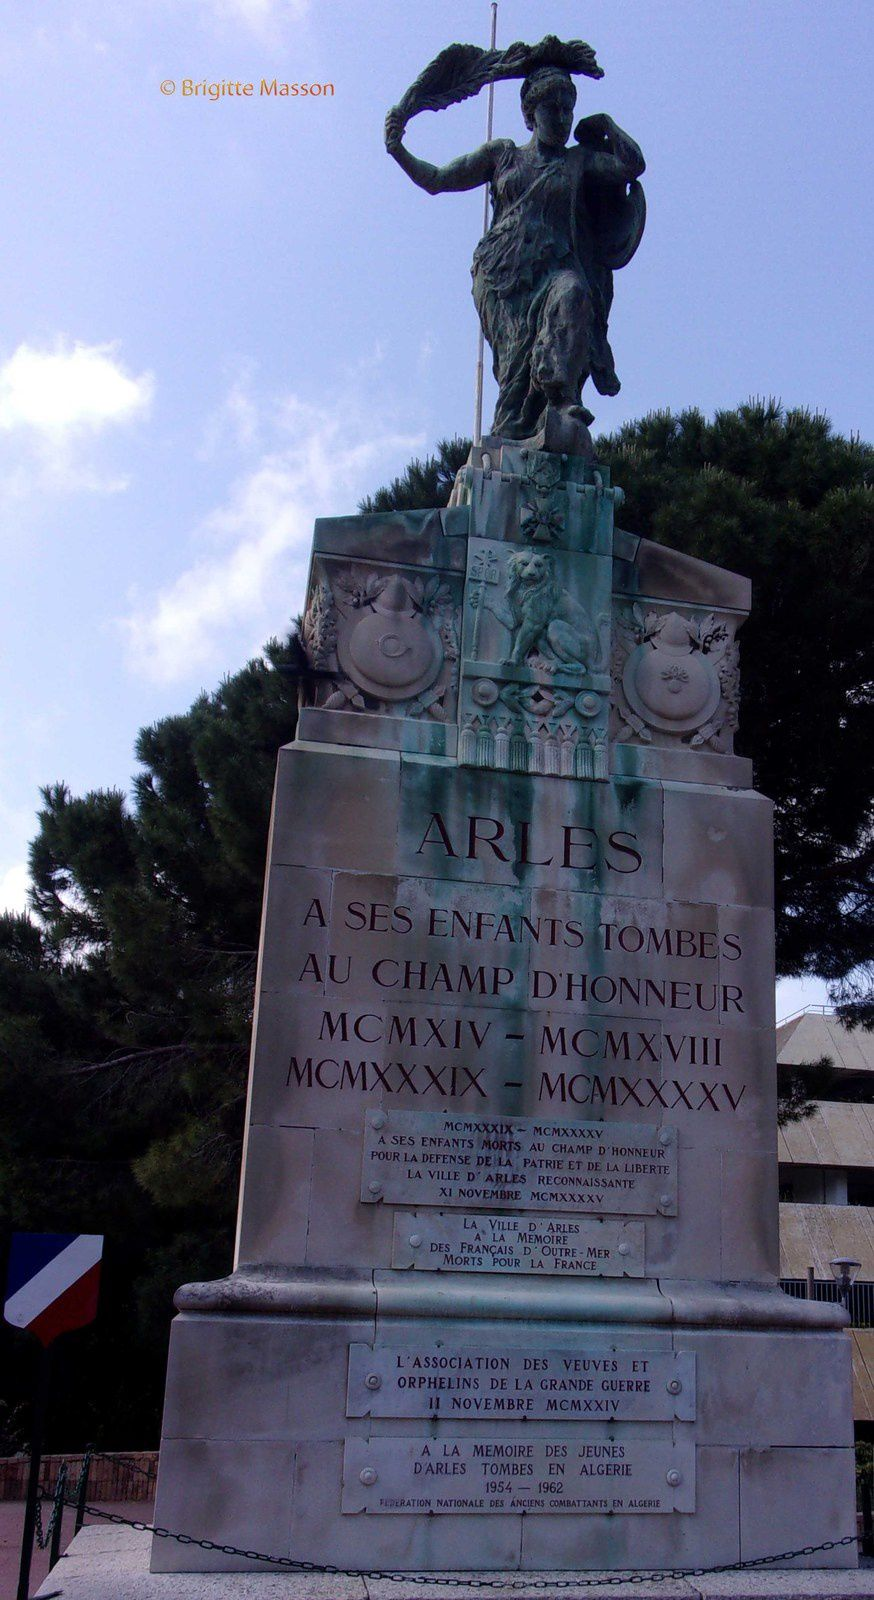 Rencontre arles monuments aux morts